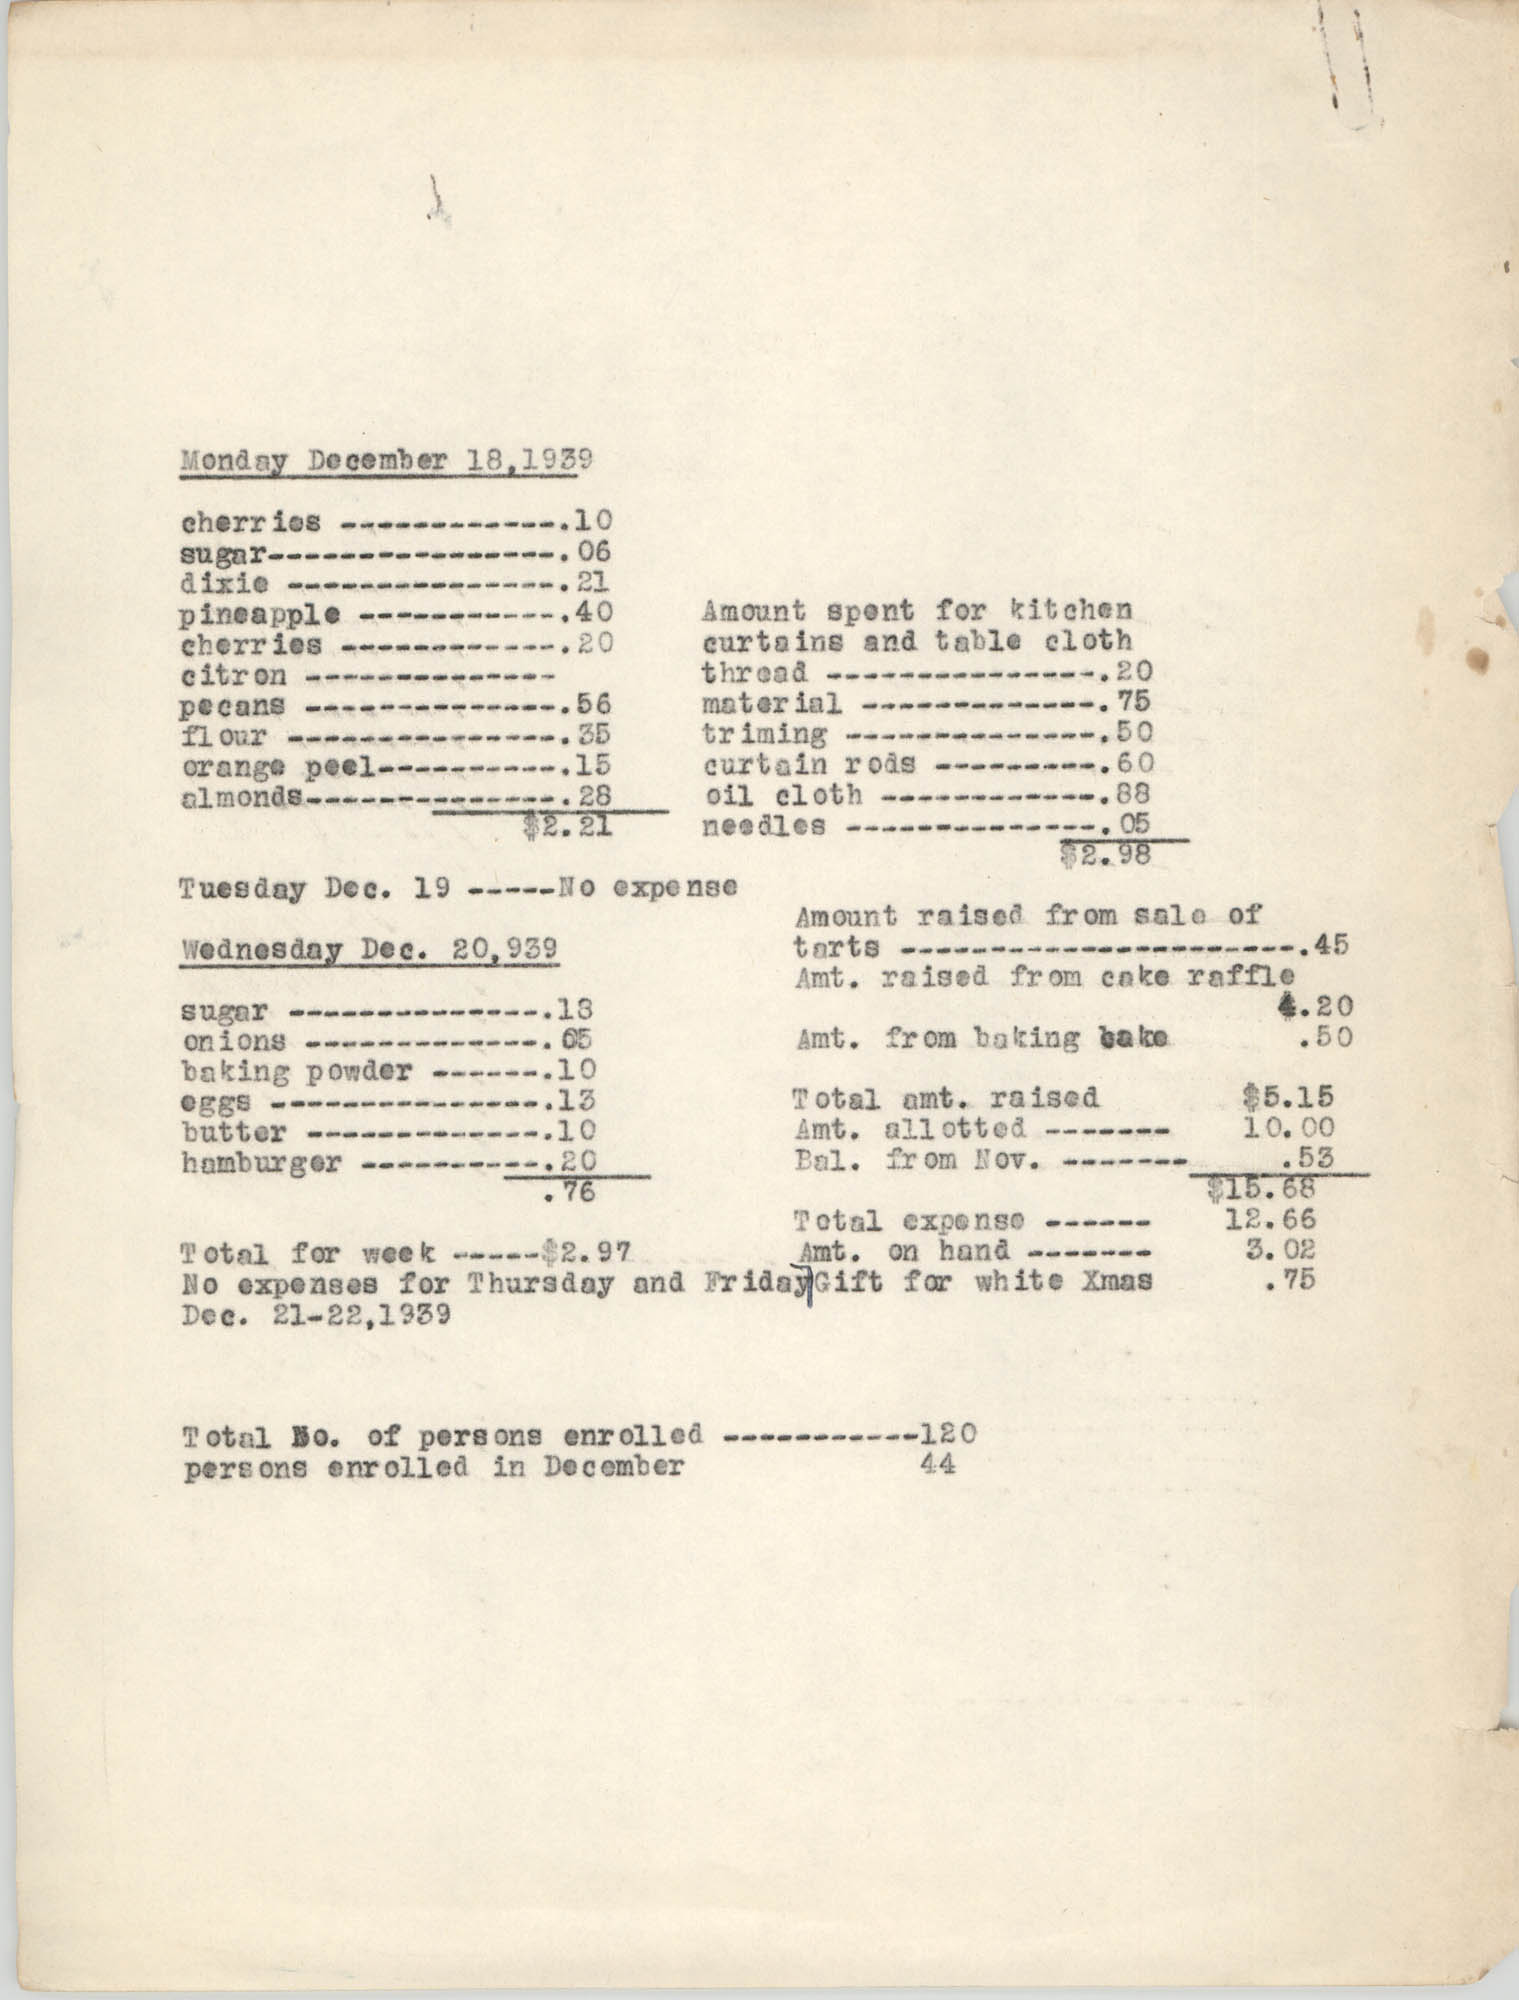 Monthly Report for the Coming Street Y.W.C.A., Domestic Science Training School Expenses, December 1939, Page 2